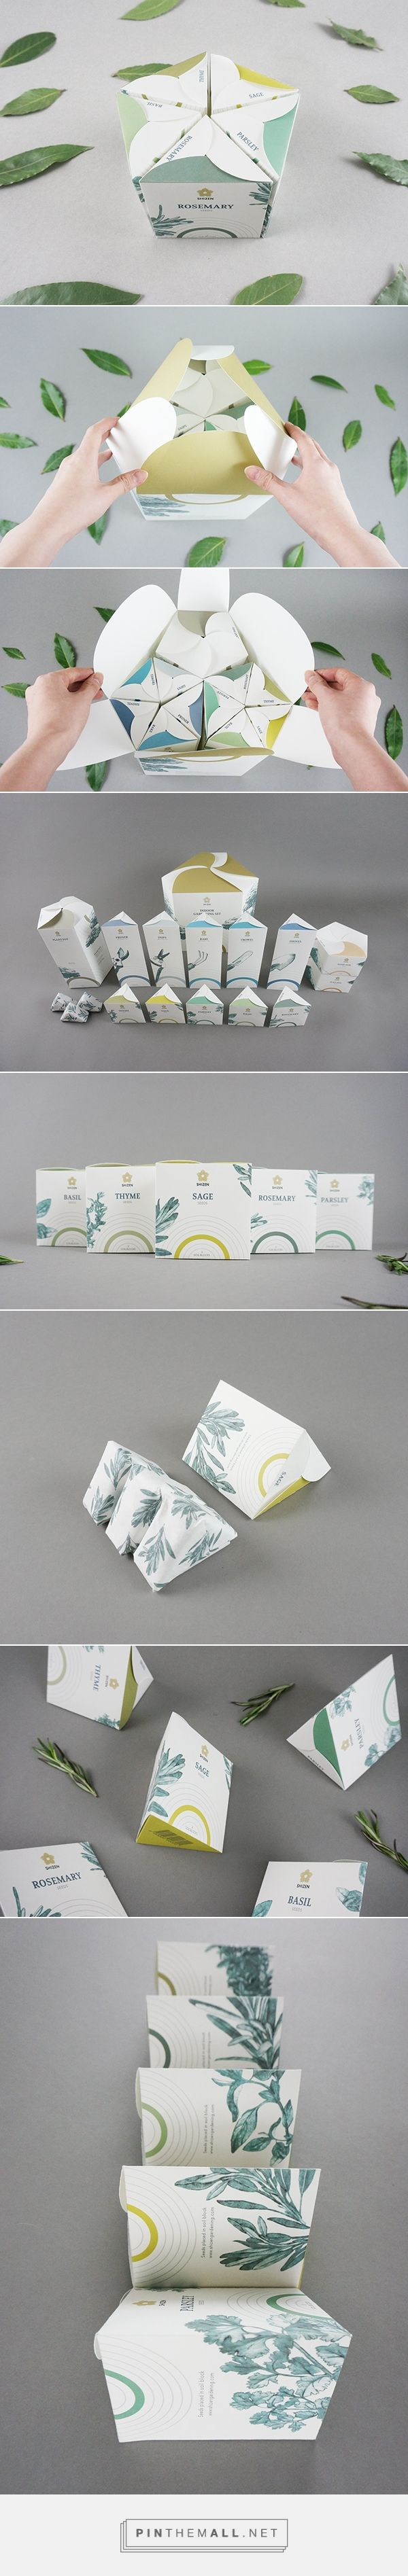 SHIZEN Indoor gardening tools and seeds set packaging by In-young Bae. Pin…